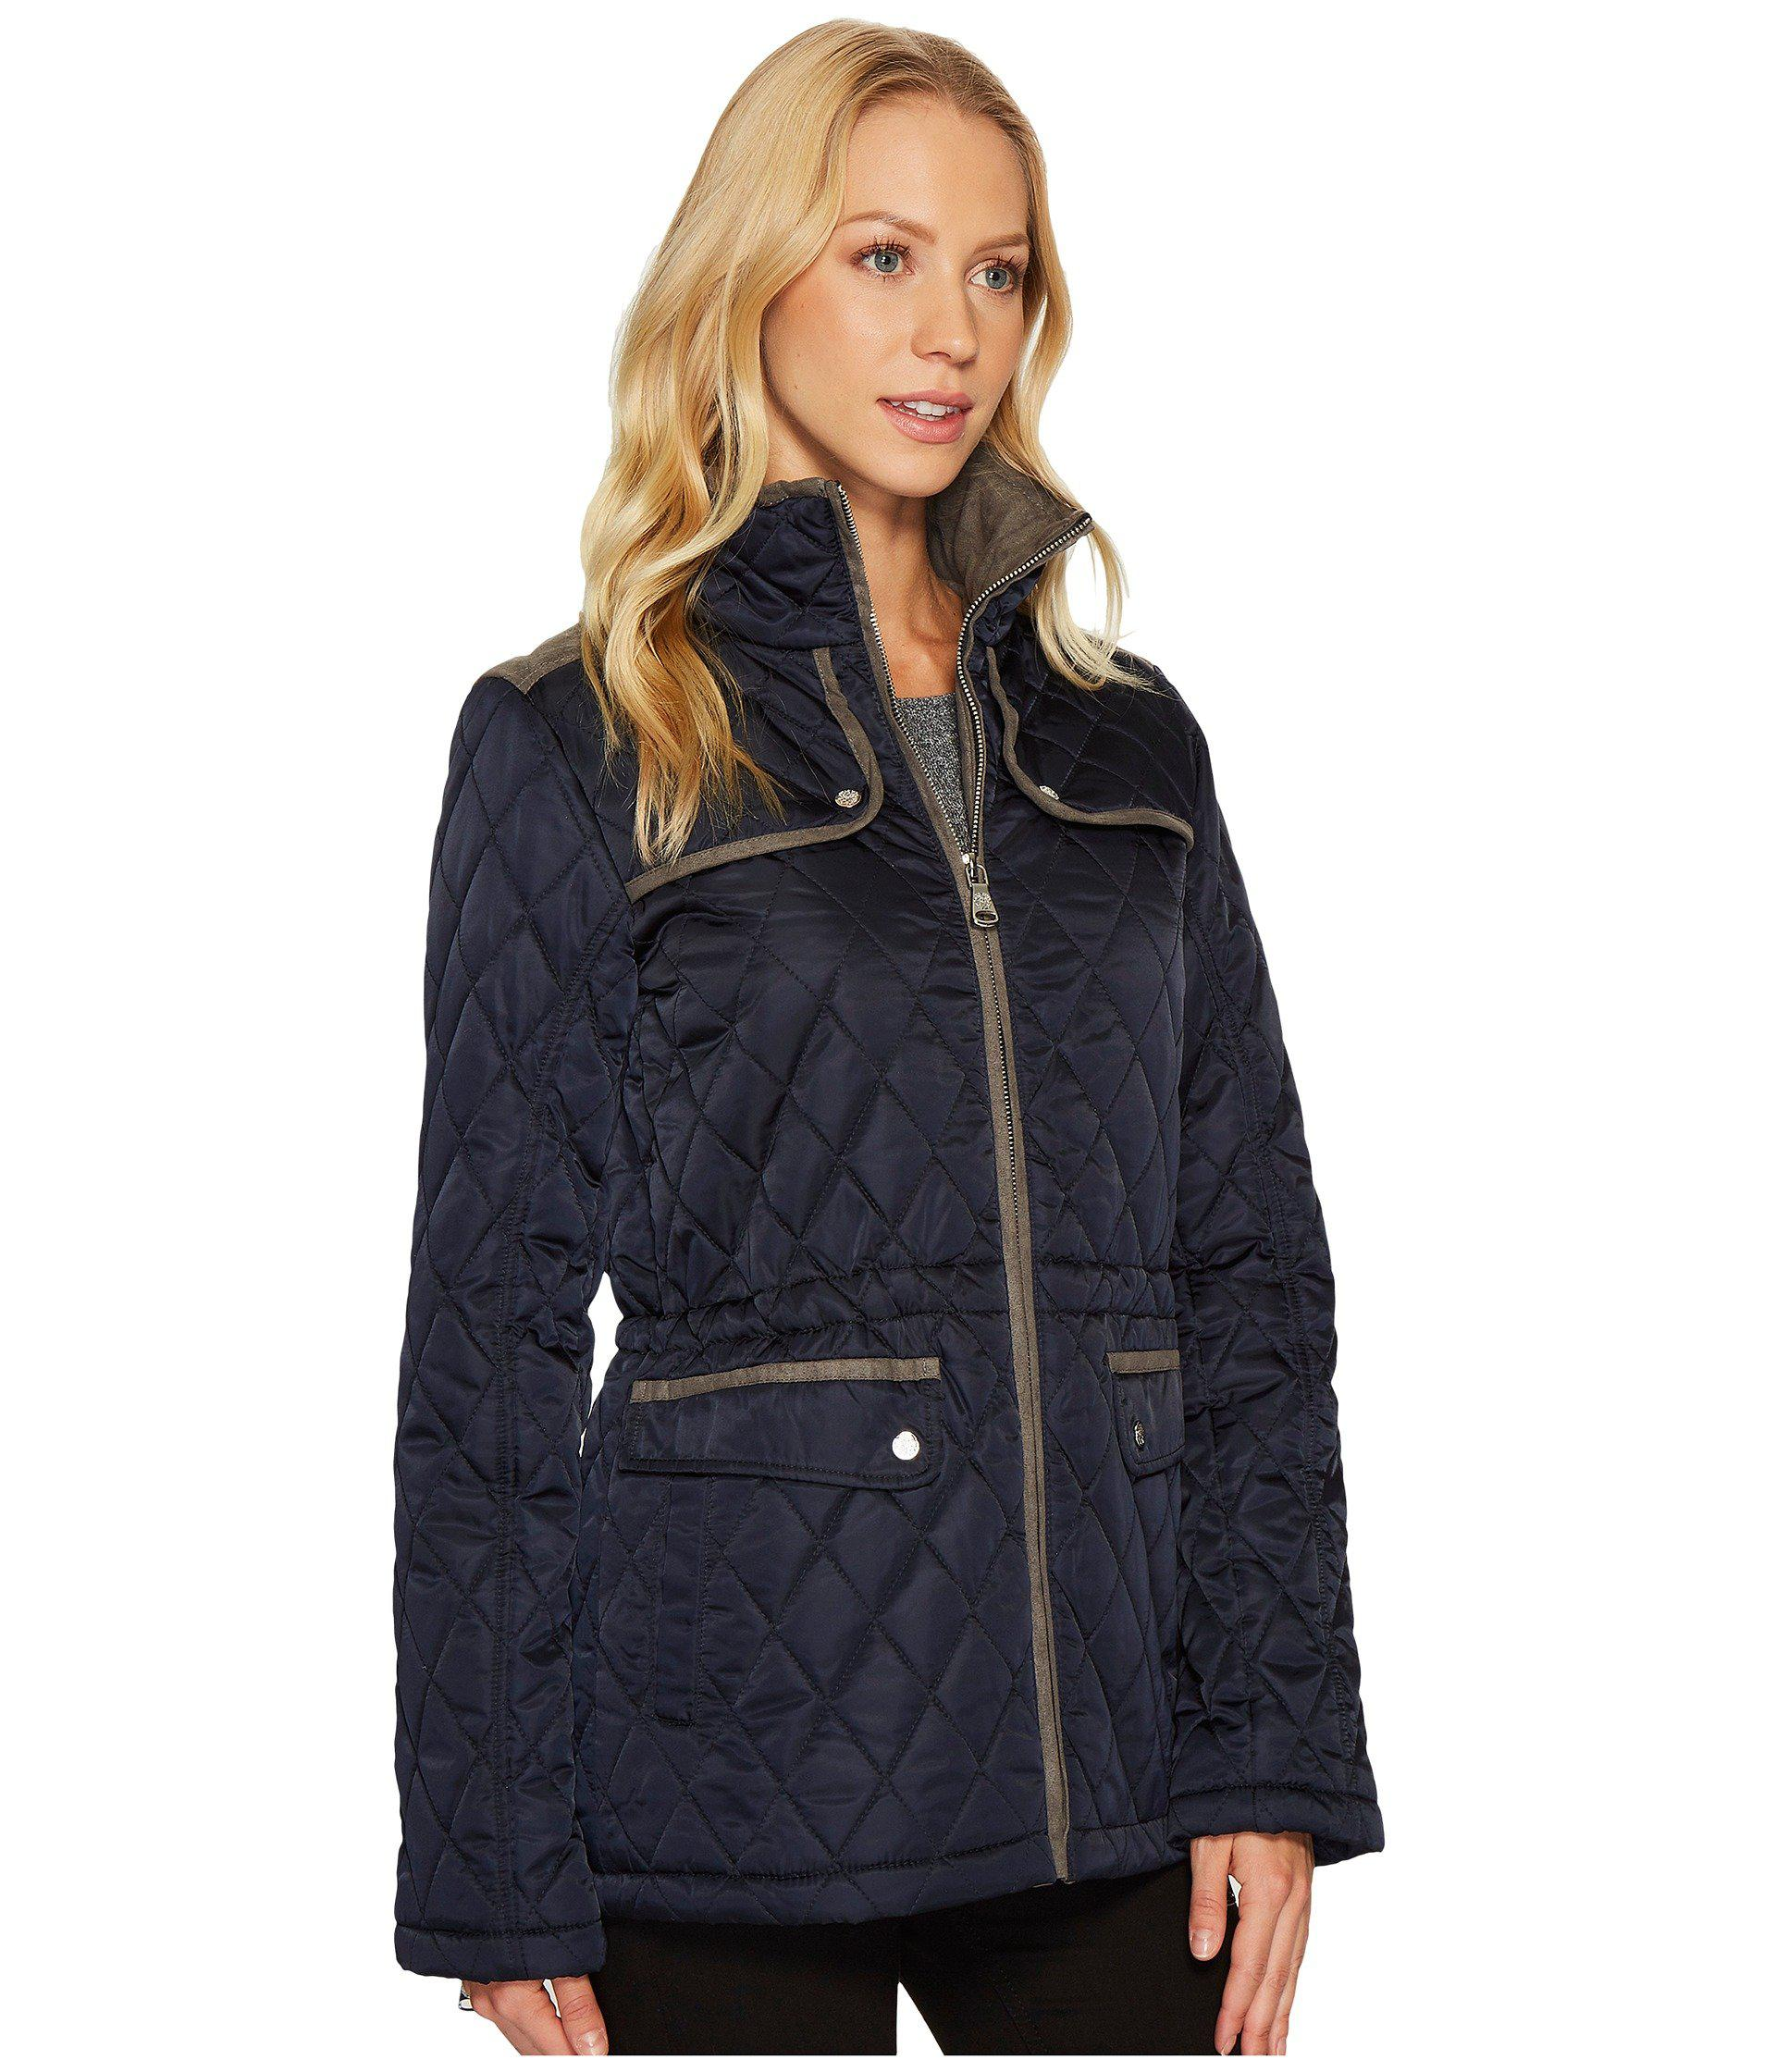 Ruby Rd Womens Open-Front Heavy Stretch Suede Jacket with Patch Pockets Faux Fur Coat